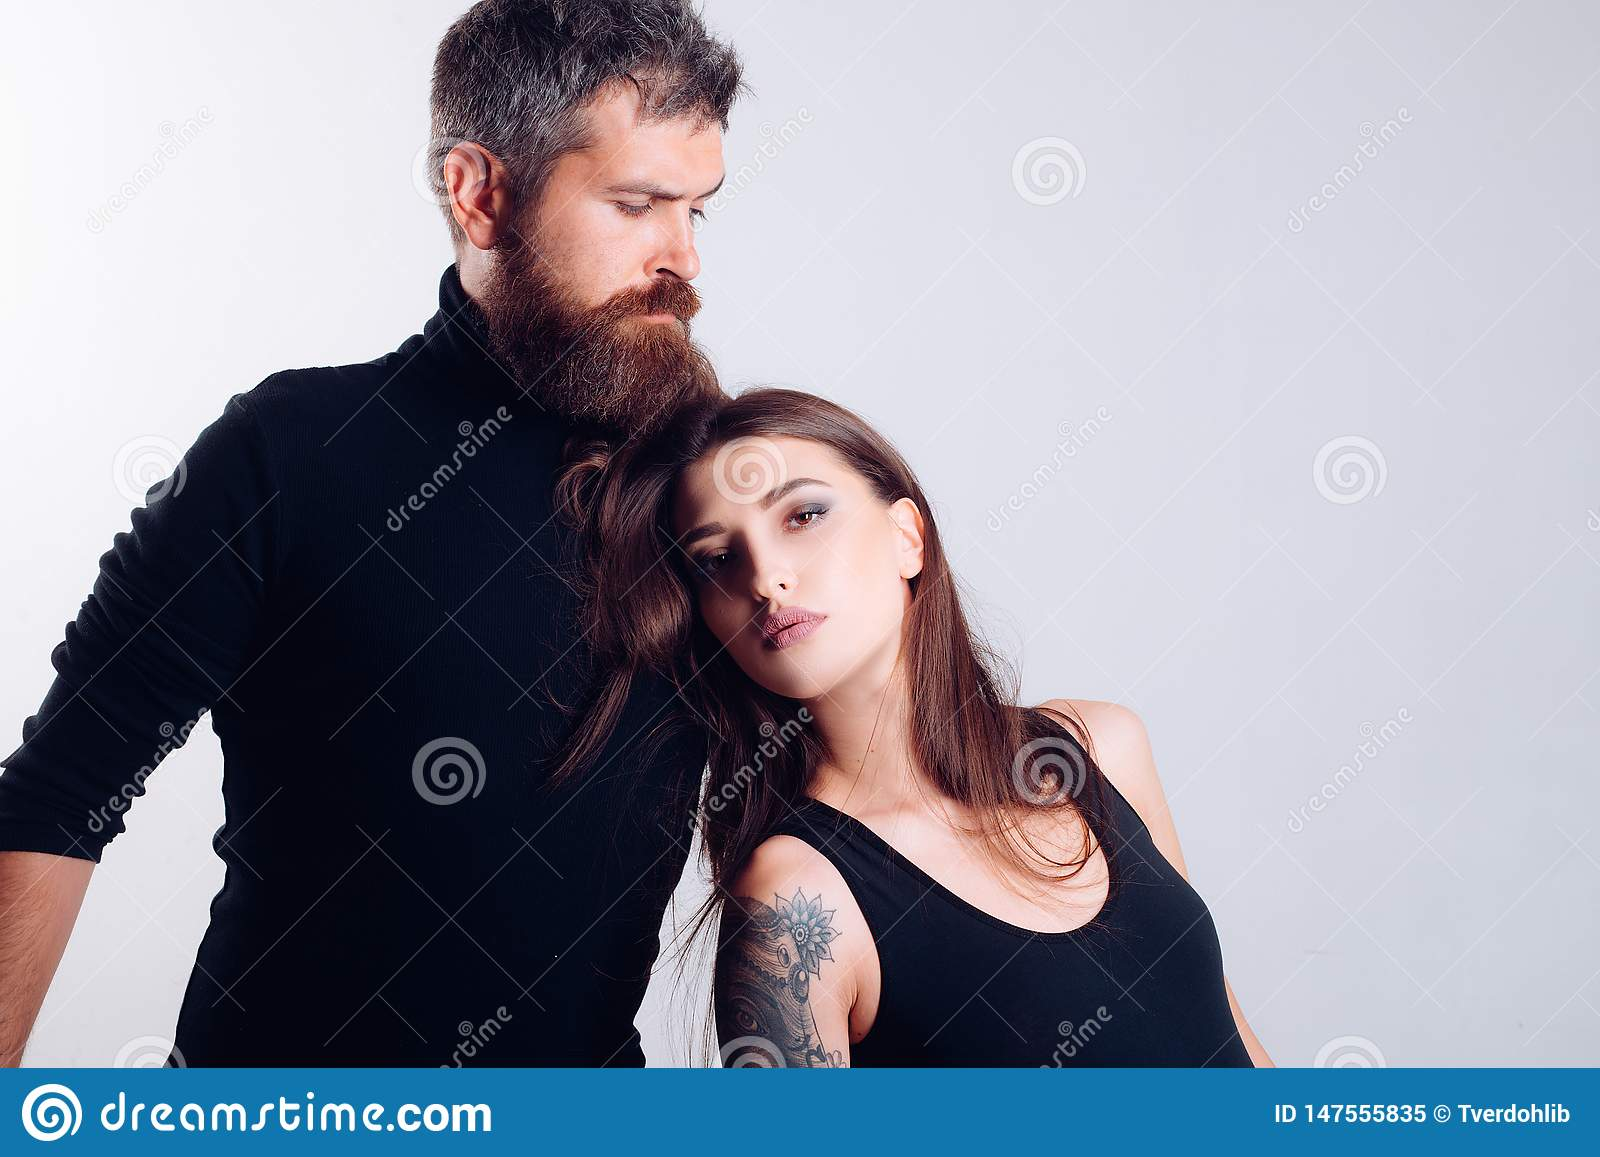 Sexy Tattoo Couple Stock Images - Download 18 Royalty Free ...